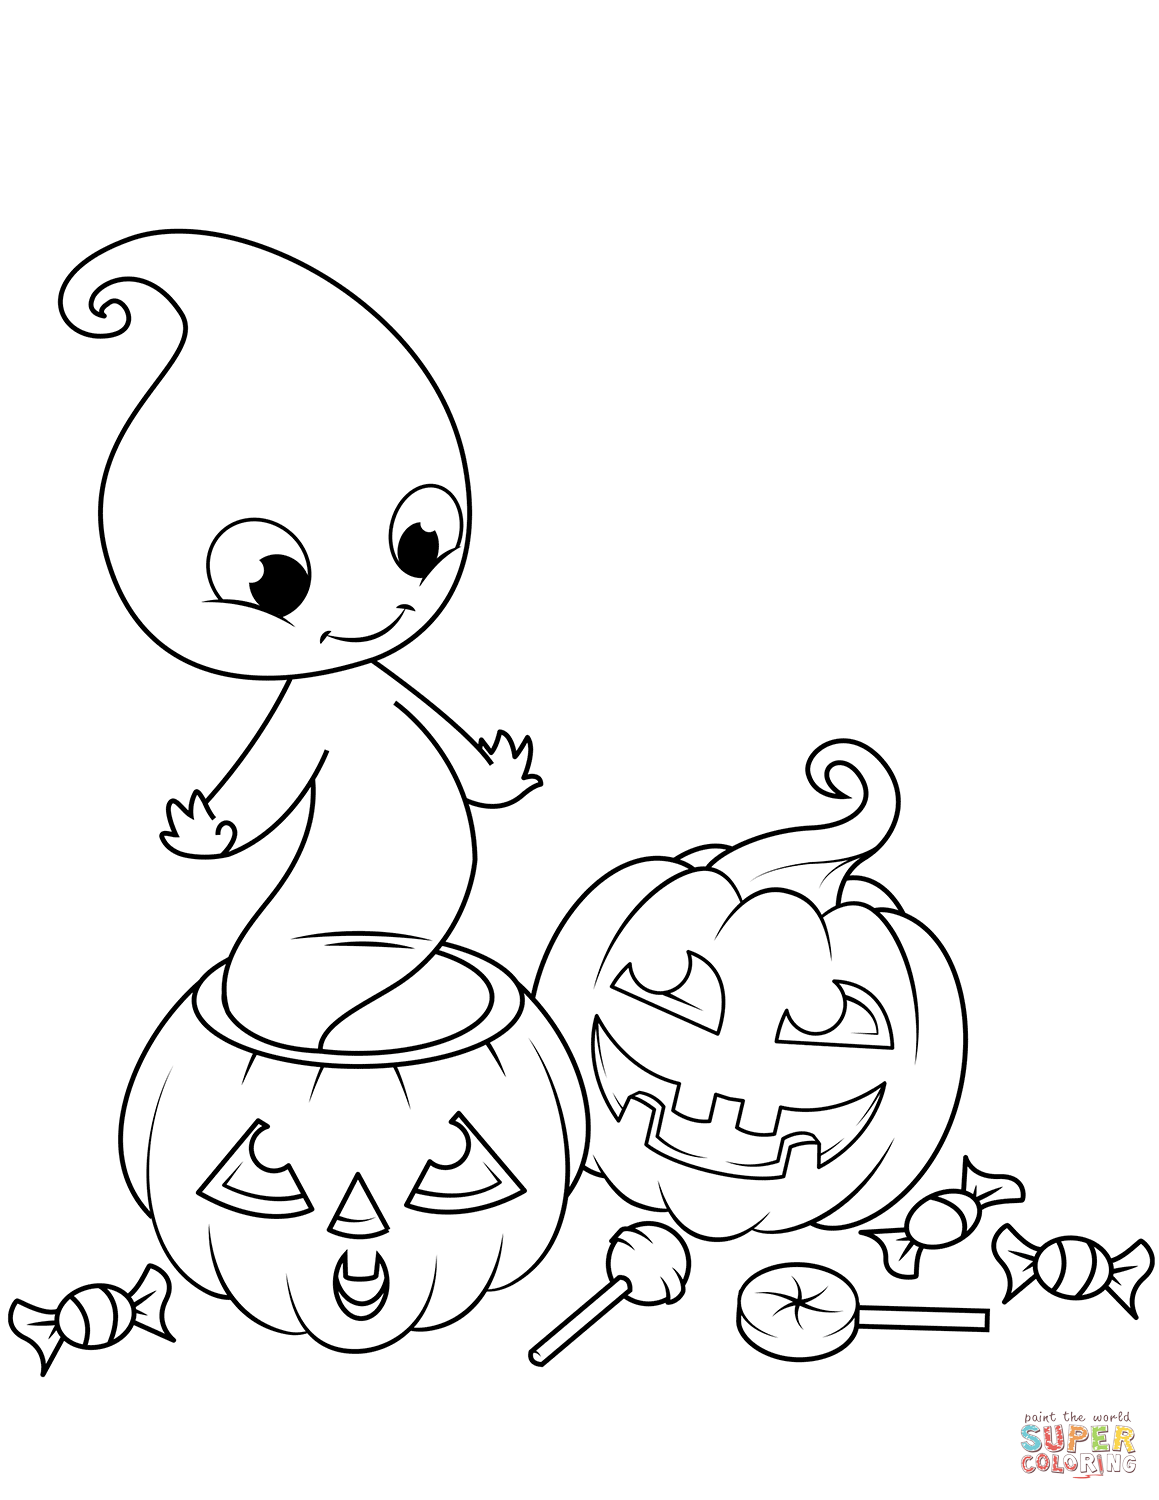 Cute Ghost from Jack O'Lantern | Super Coloring #halloweencoloringpages